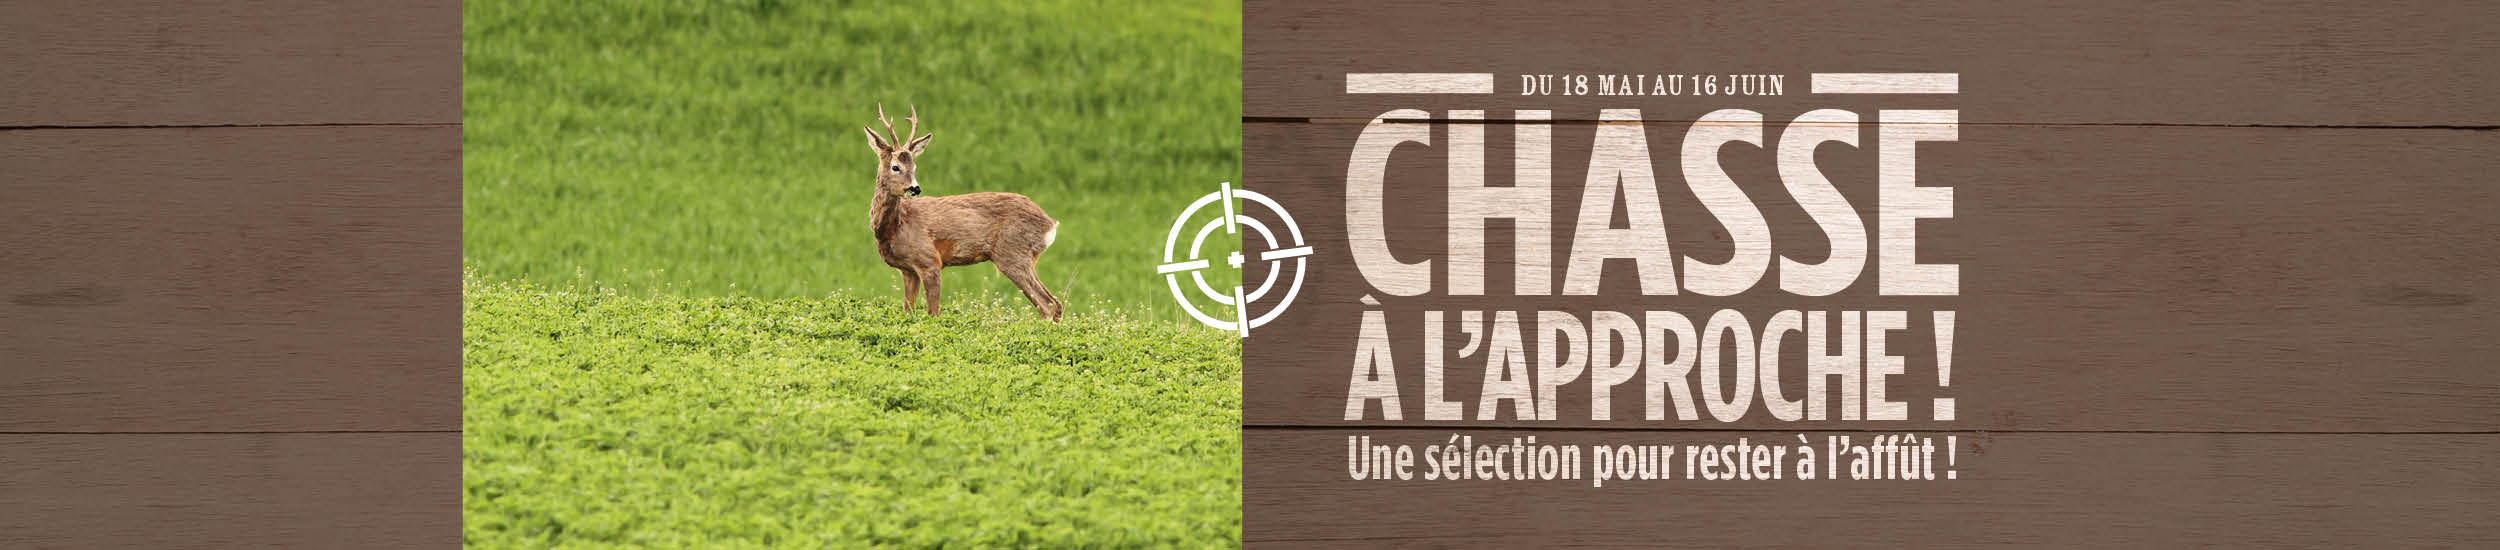 CHASSE A L'APPROCHE